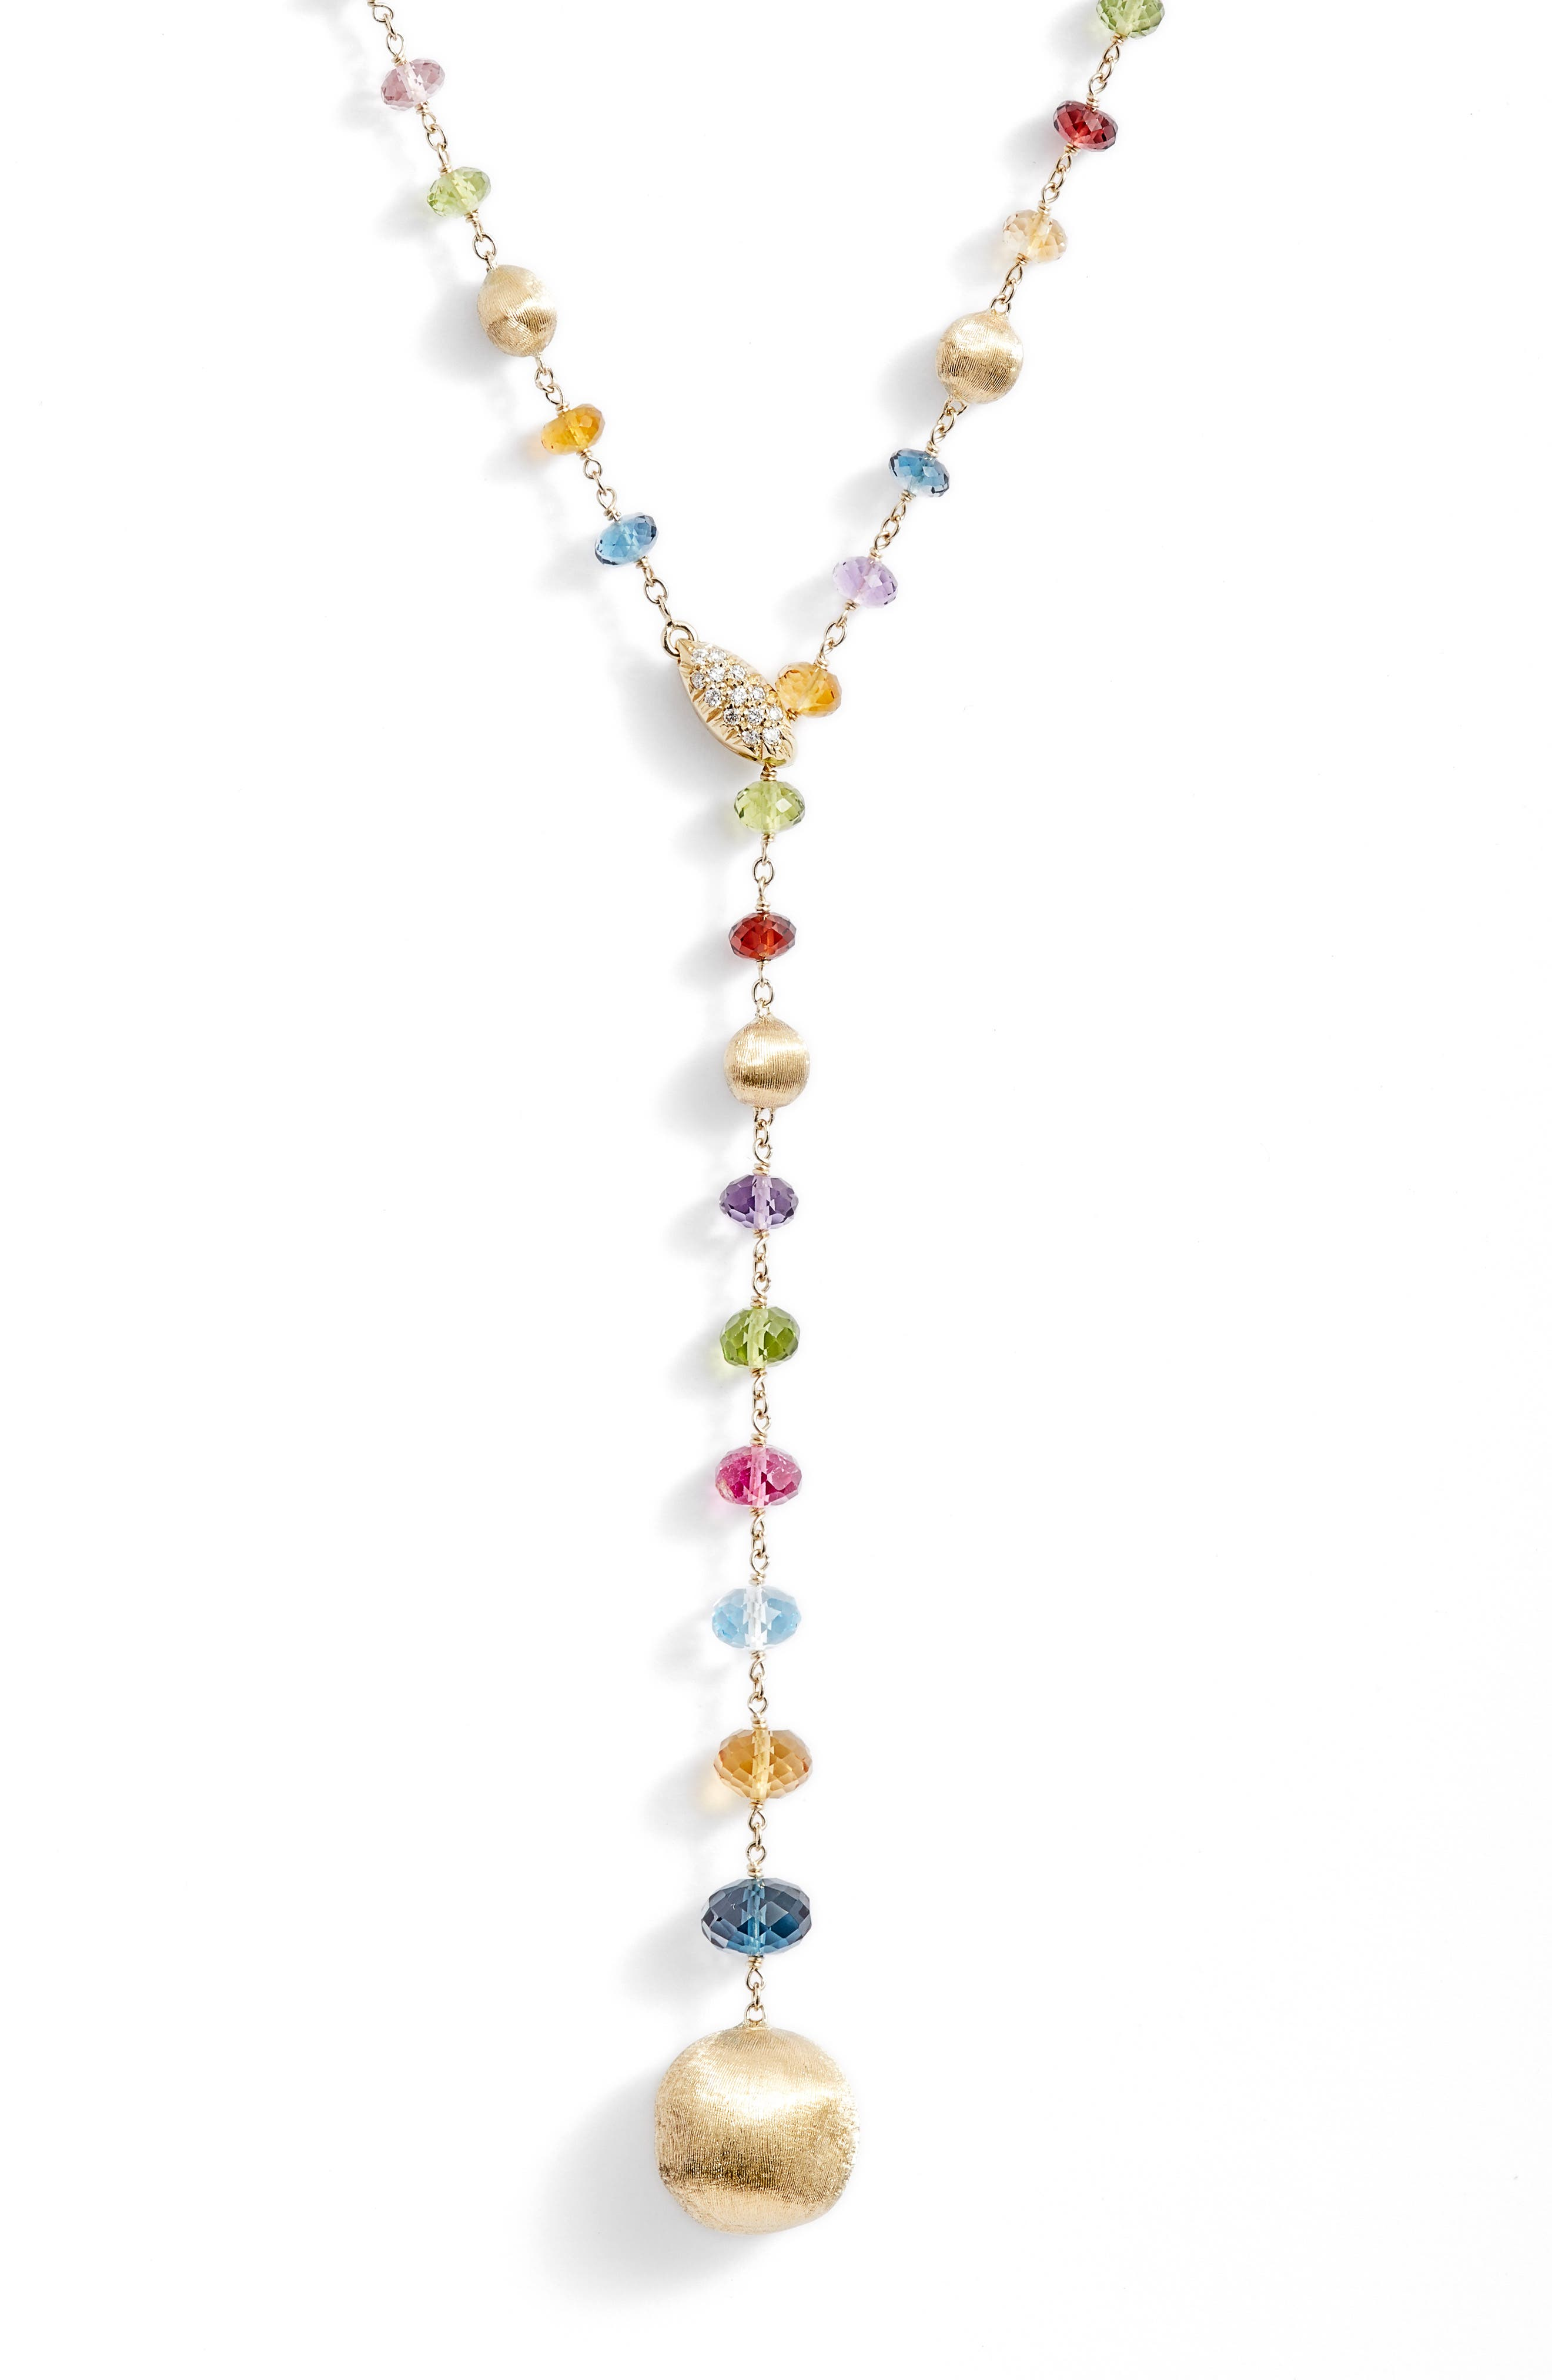 Africa Semiprecious Stone Lariat Necklace,                             Alternate thumbnail 2, color,                             YELLOW GOLD